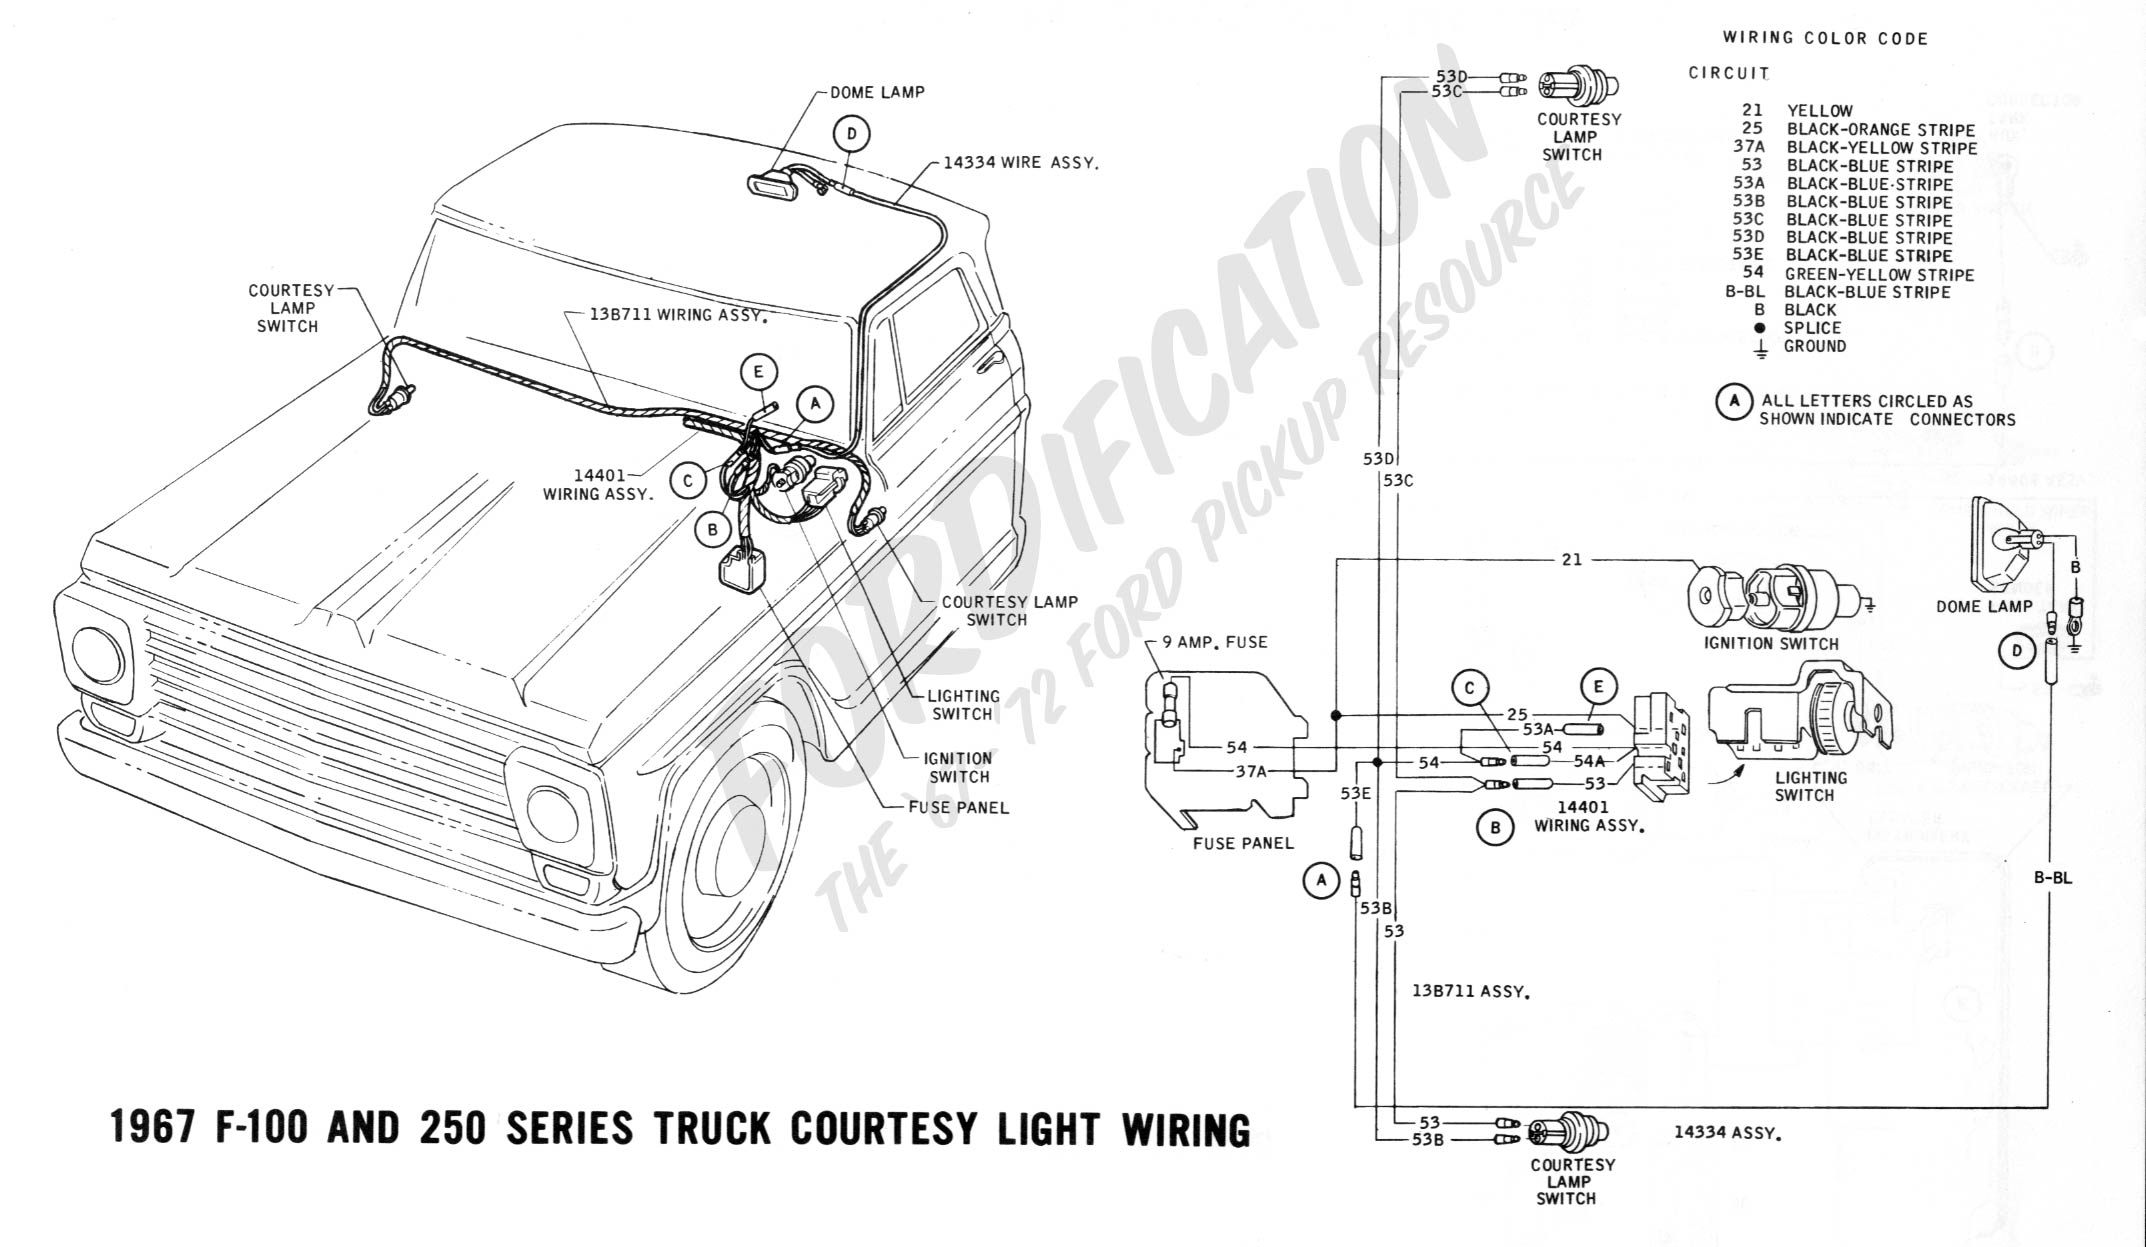 wiring 1967courtesylight wiring in ignition switch in 1966 f100 ford truck enthusiasts forums 1969 Ford F100 Steering Column Wiring Diagram at gsmportal.co